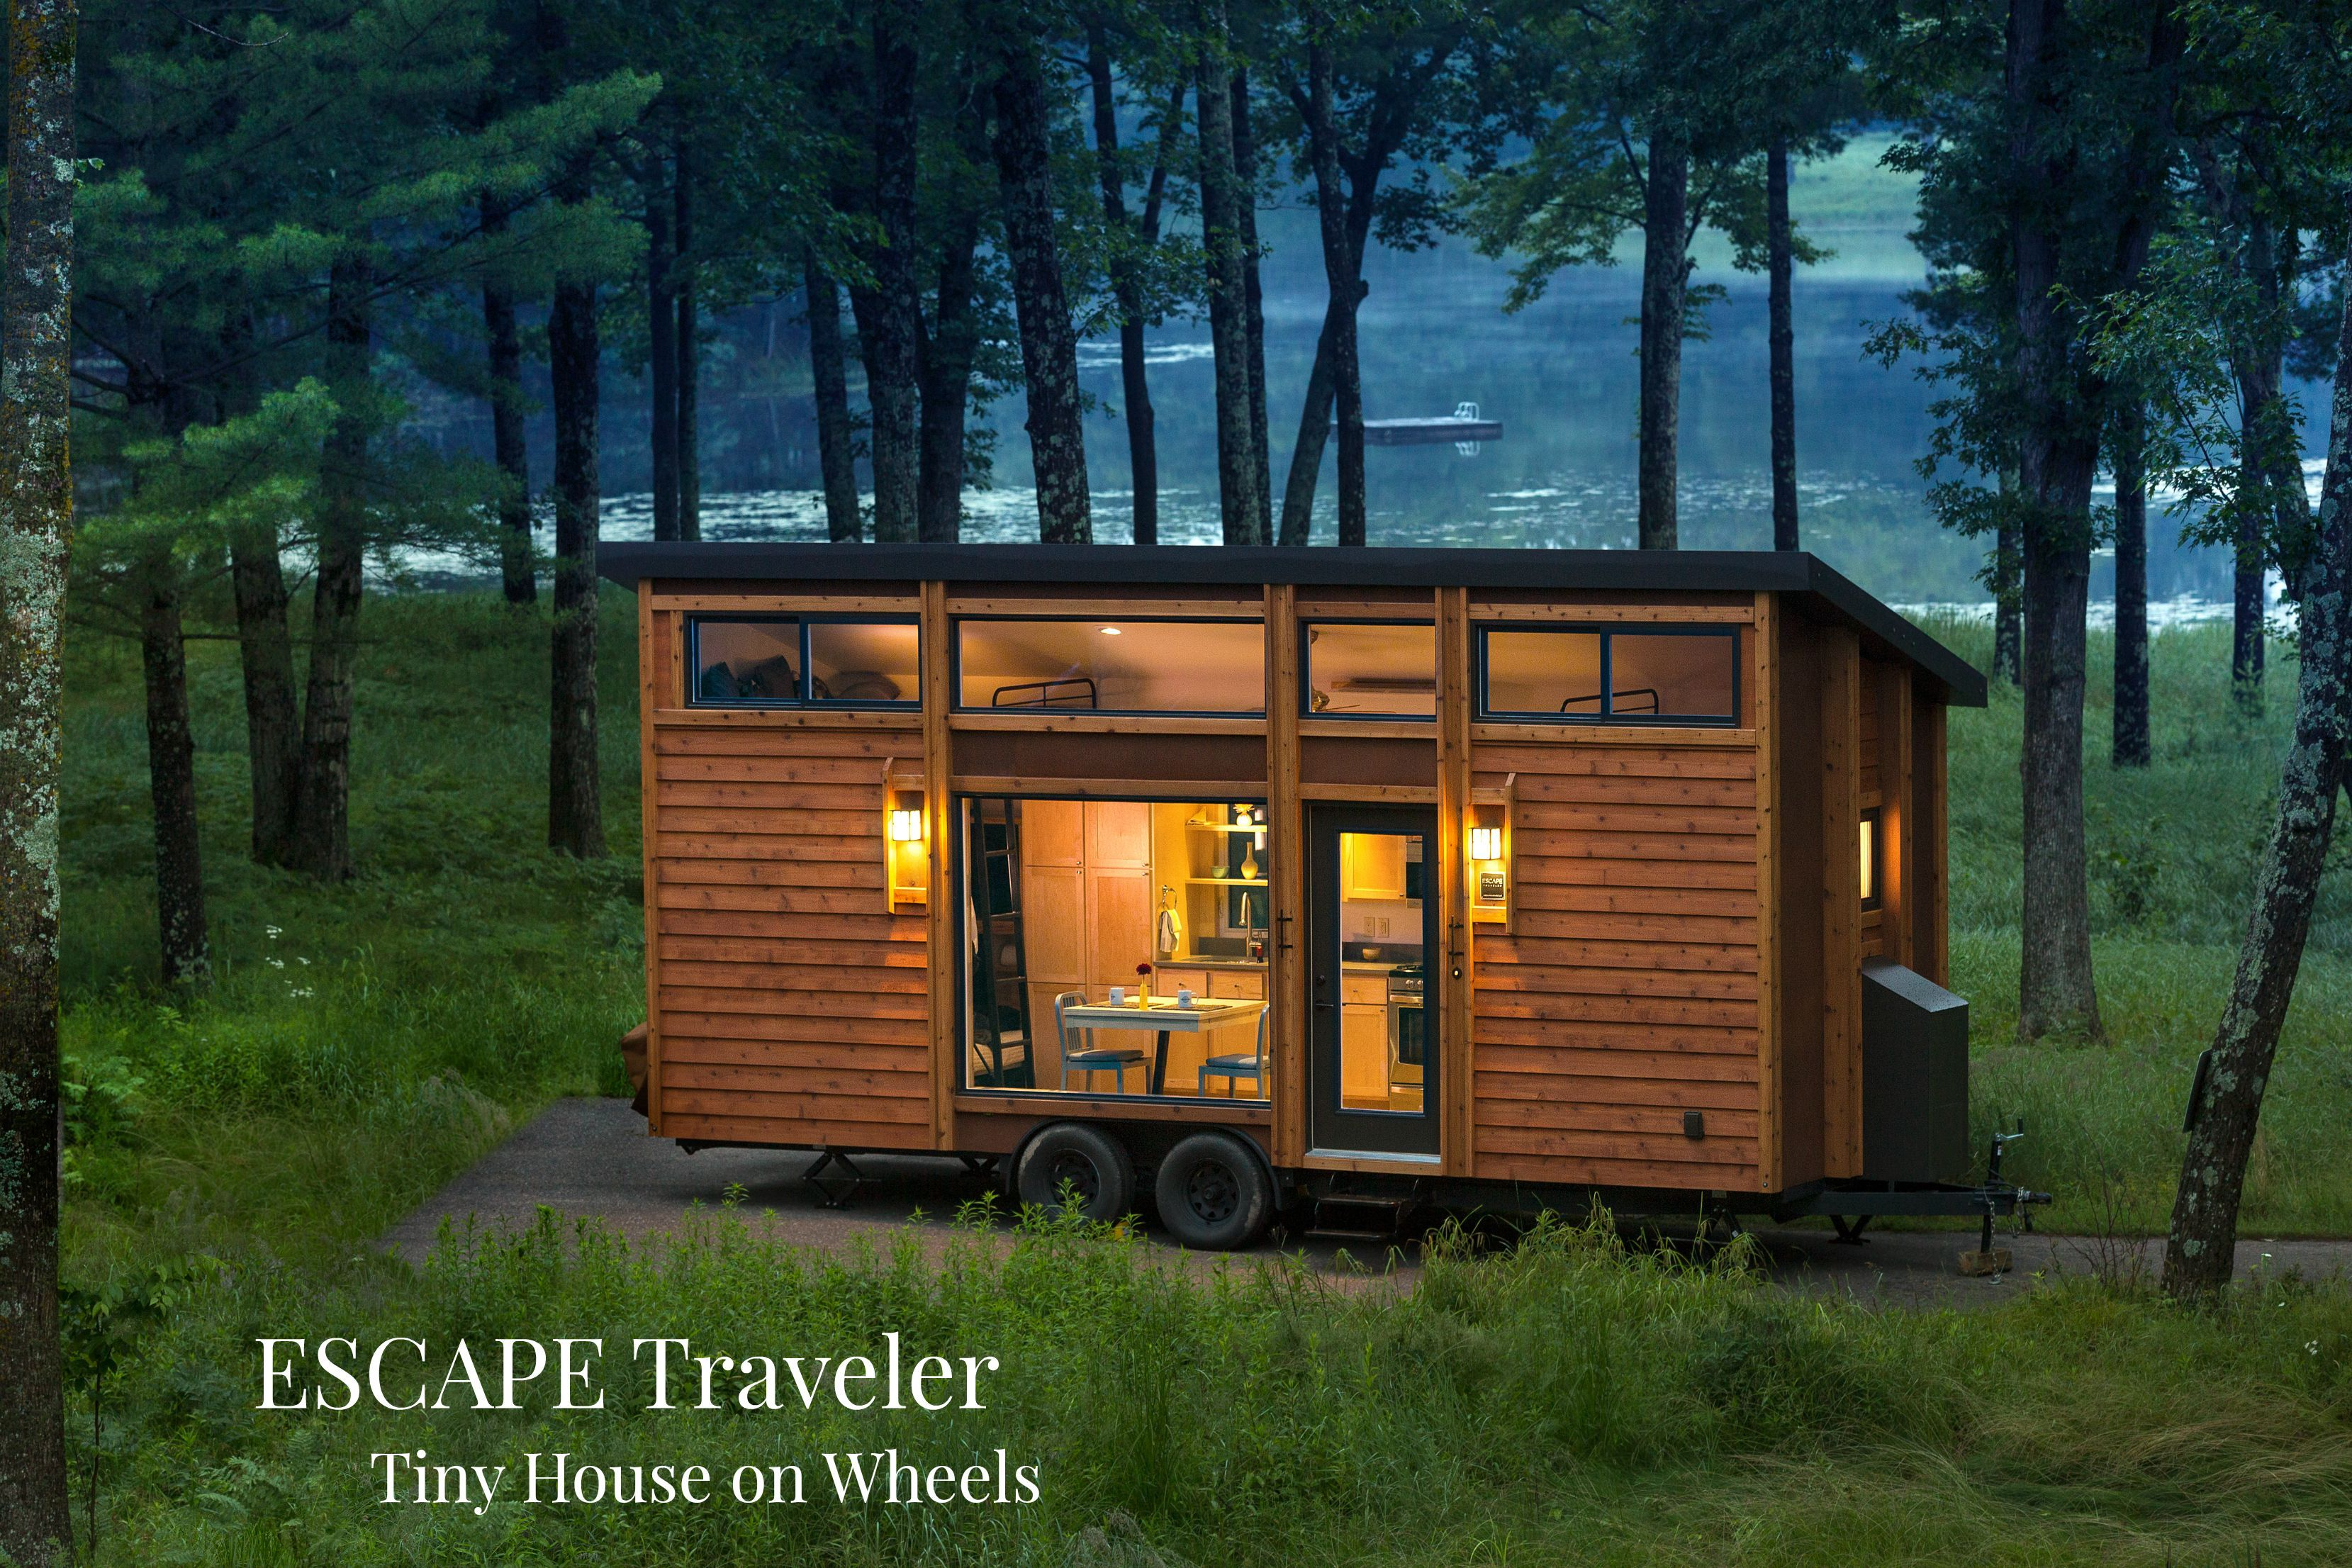 ESCAPE Traveler Tiny House on Wheels Tiny houses Wheels and